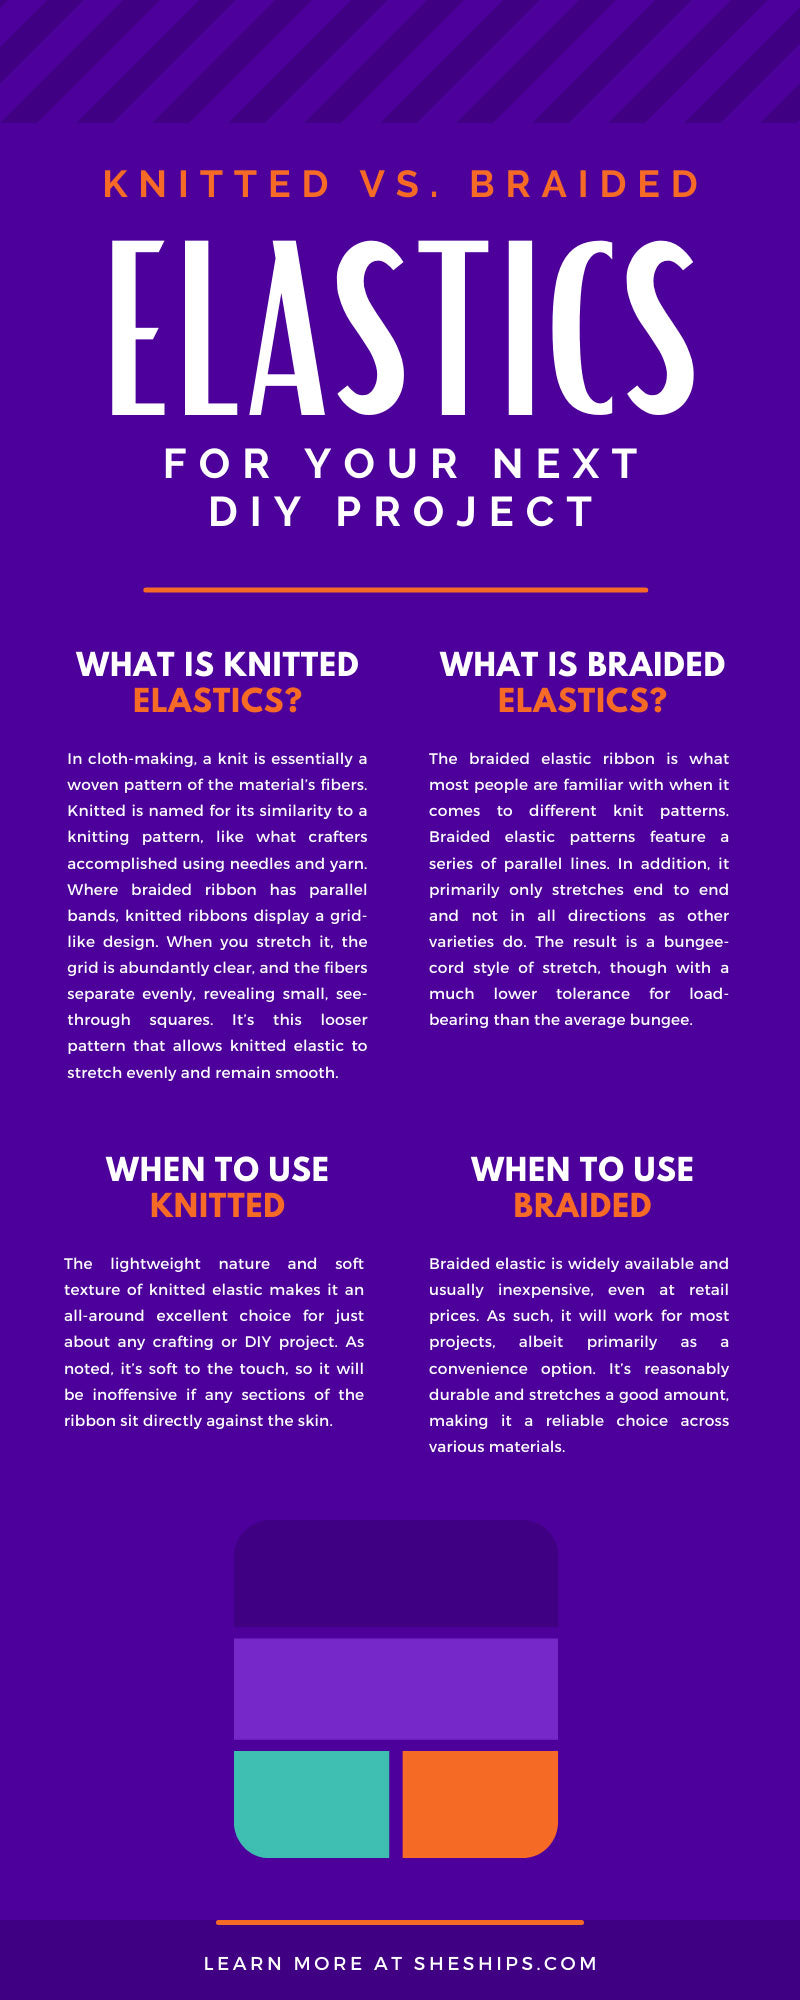 Knitted vs. Braided Elastics for Your Next DIY Project